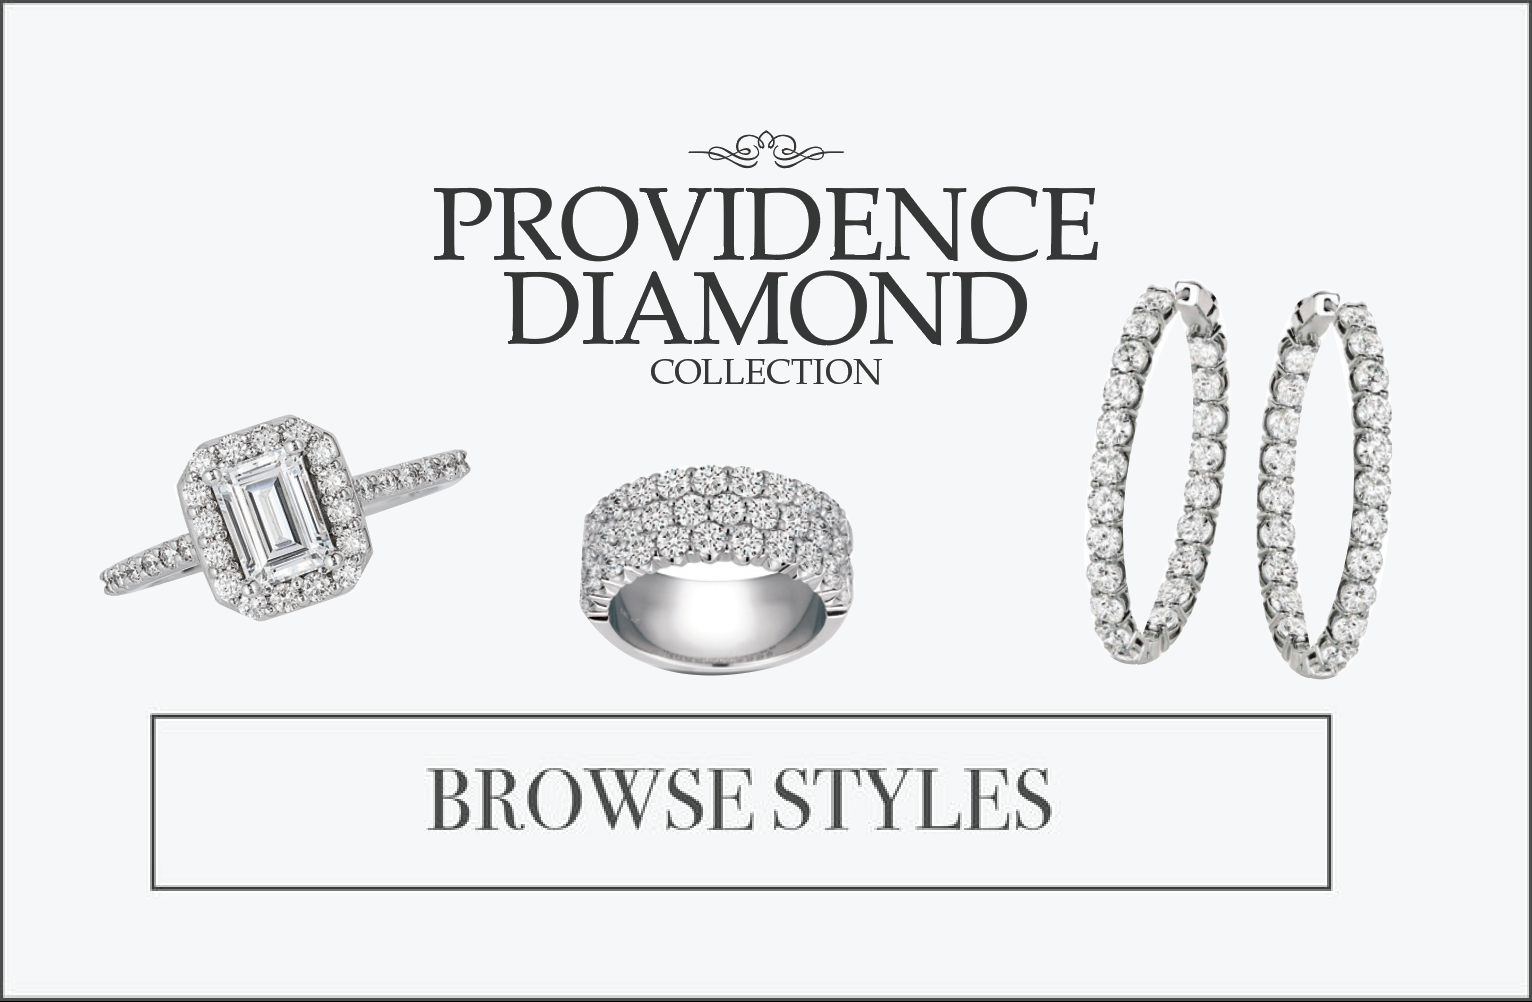 shop david yurman at providence diamond.